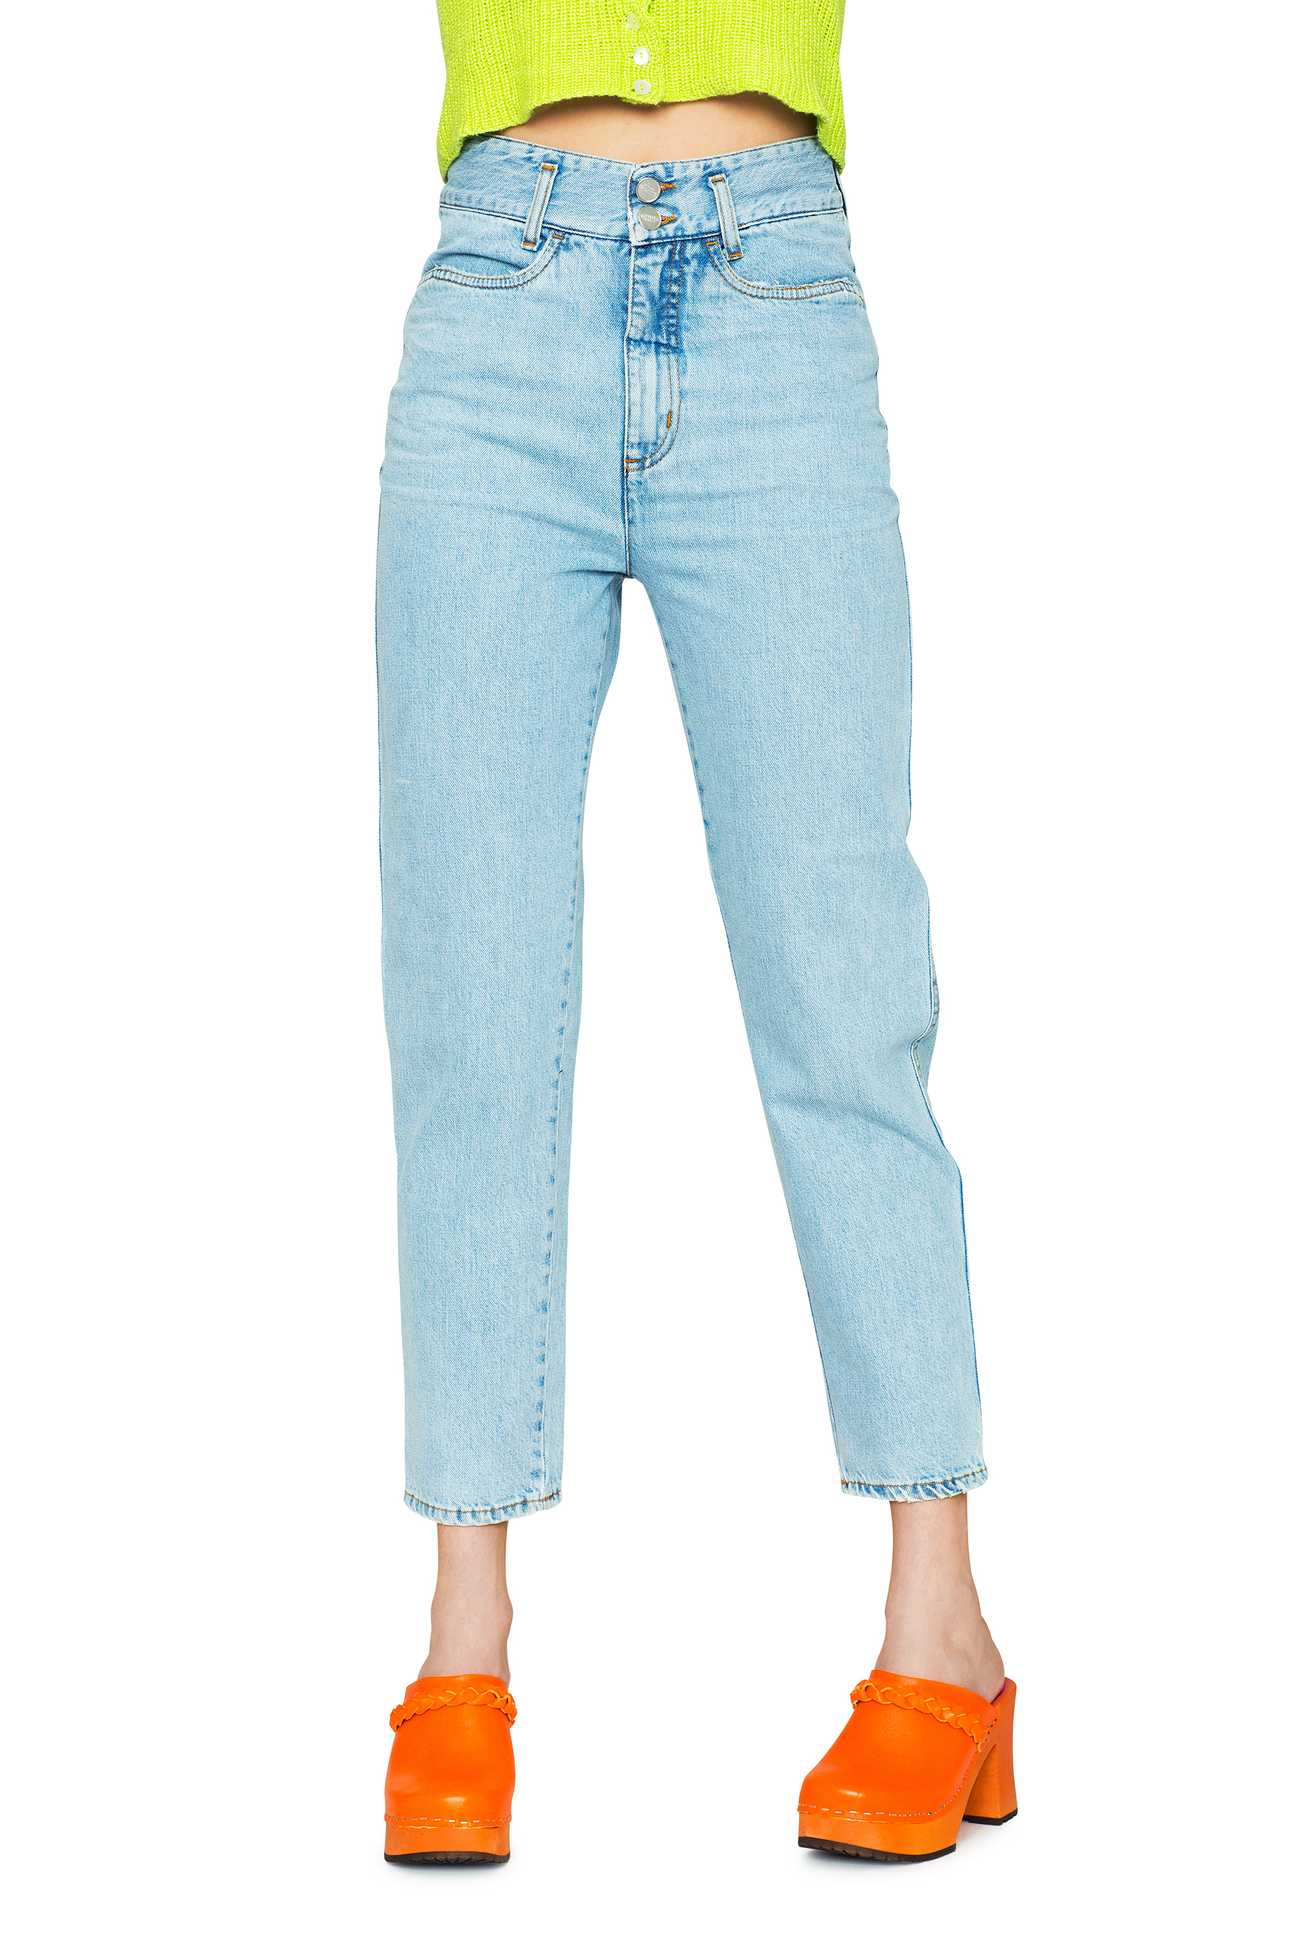 Mom Jeans Denim Light Denim